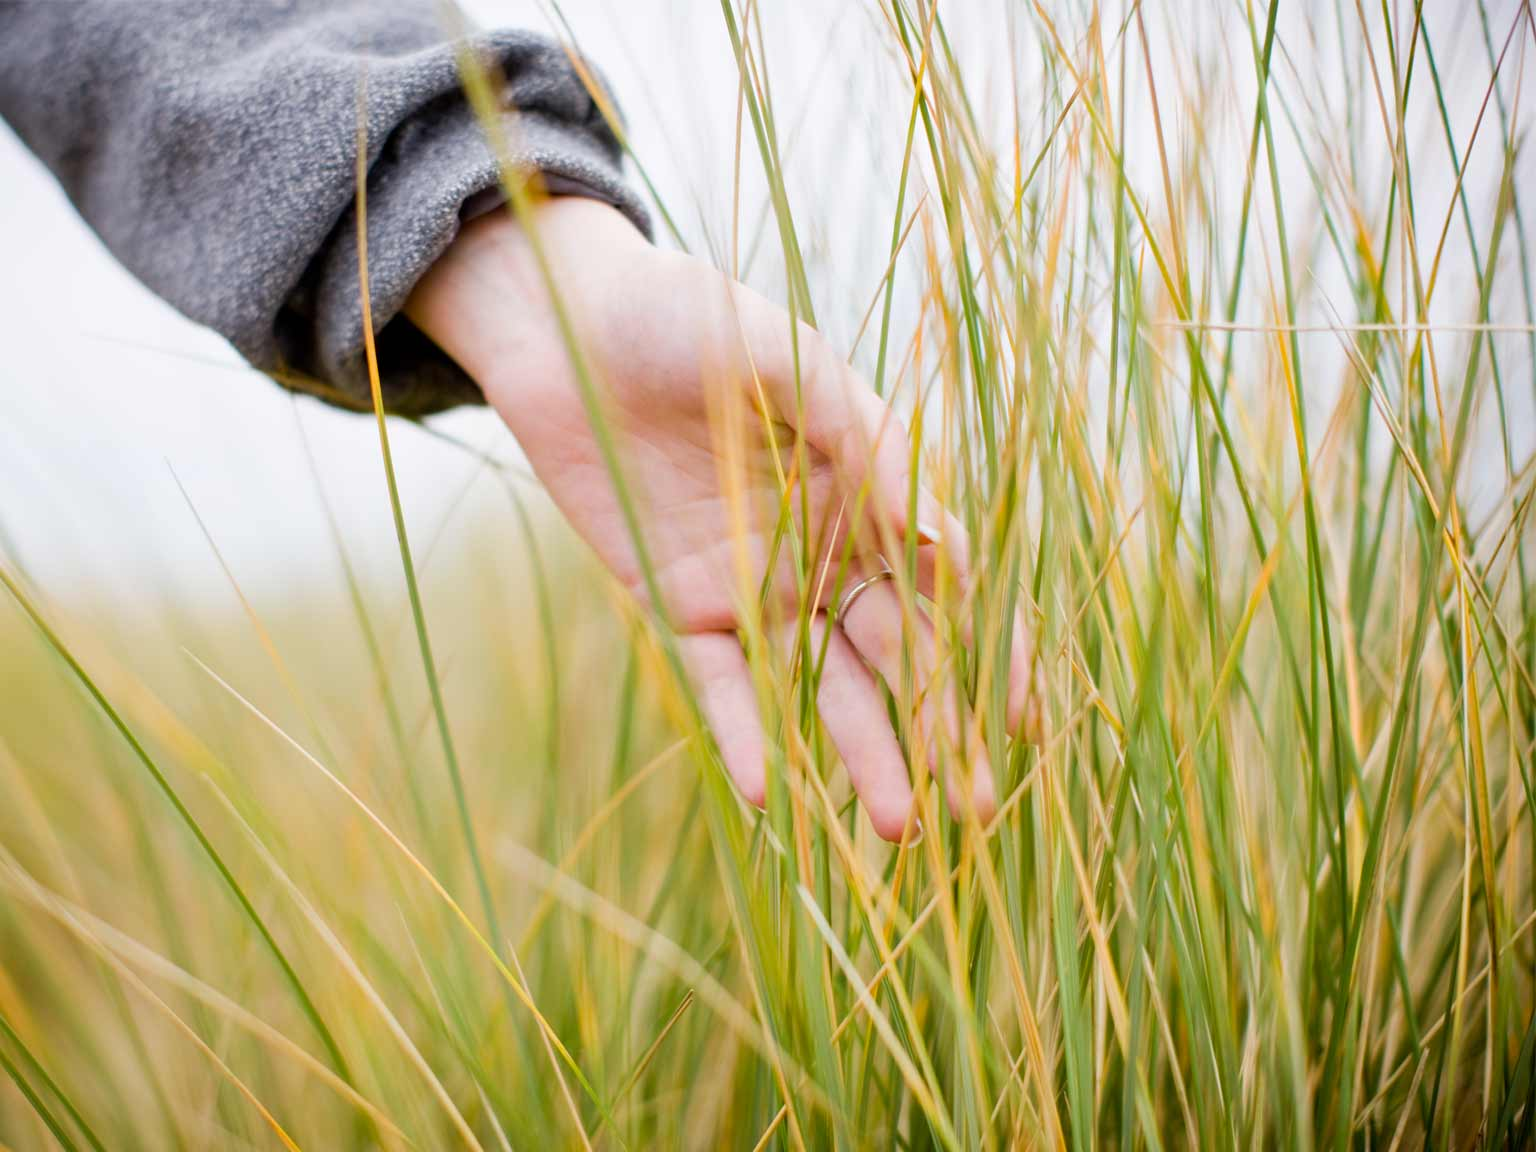 Lady's hand running through grass